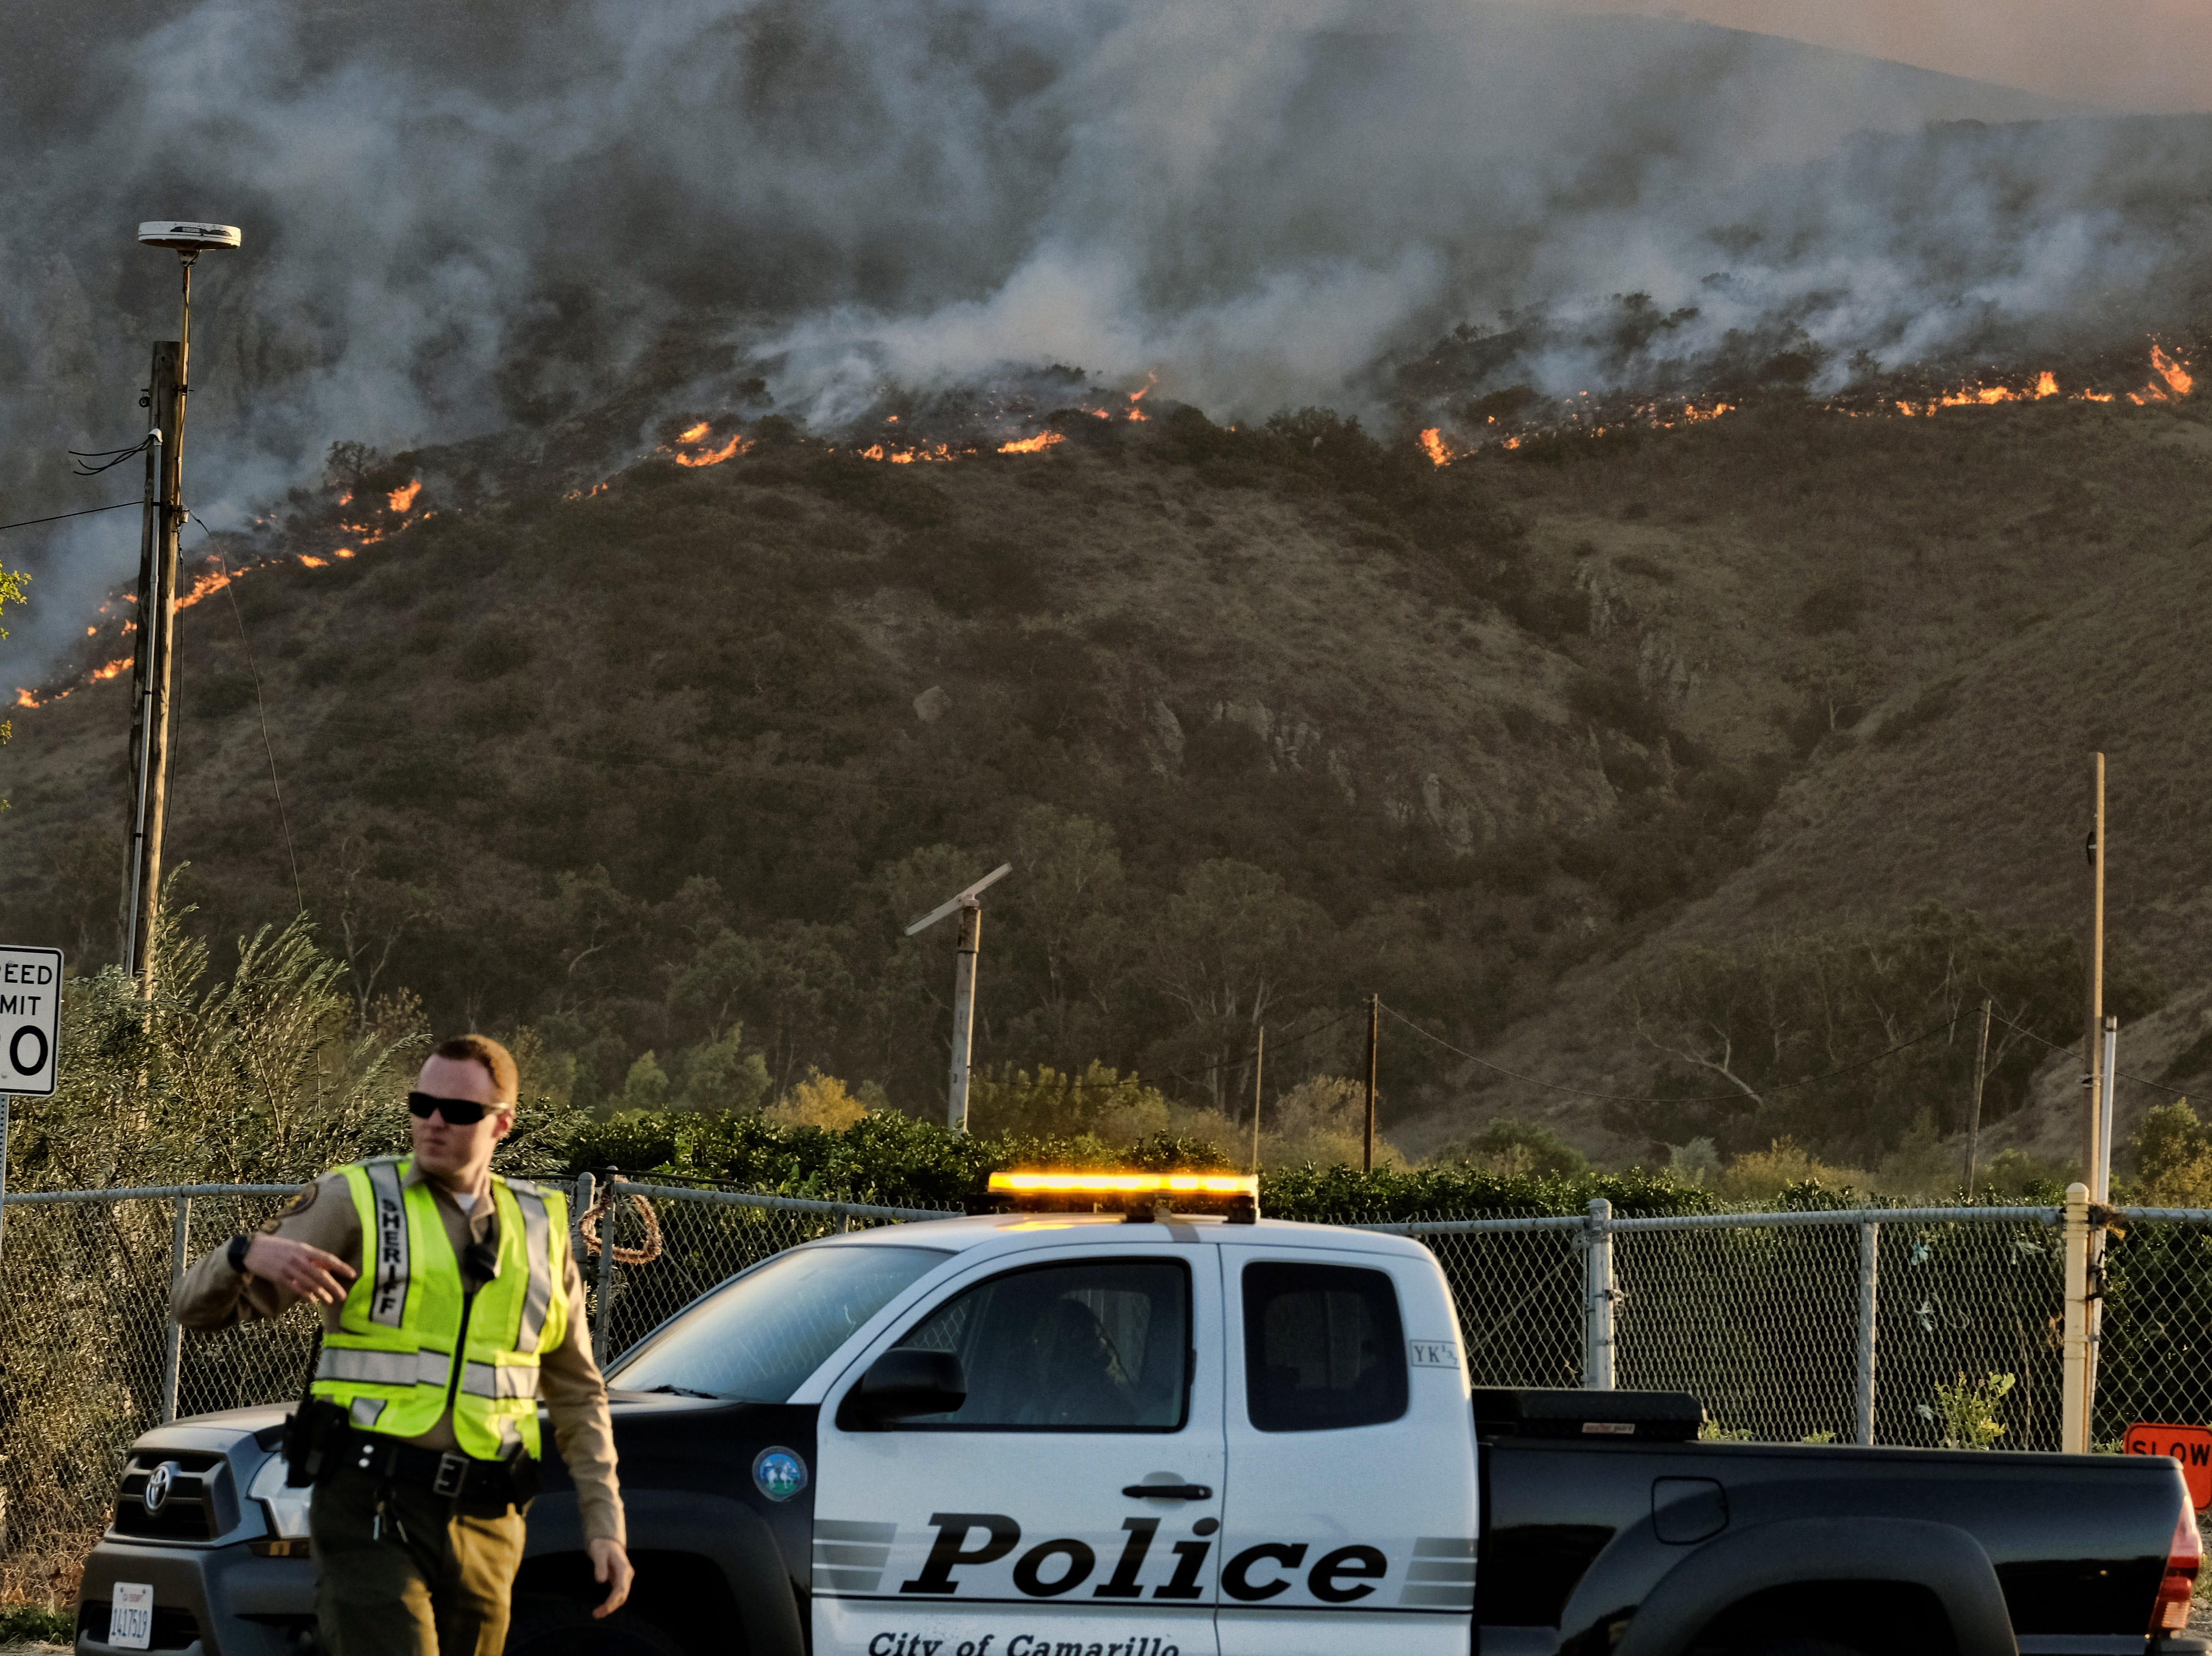 A police officer directs traffic at a checkpoint in front of an advancing wildfire Thursday near Newbury Park. The Hill Fire led to evacuations as it raced from the Santa Rosa Valley toward CSU Channel Islands.